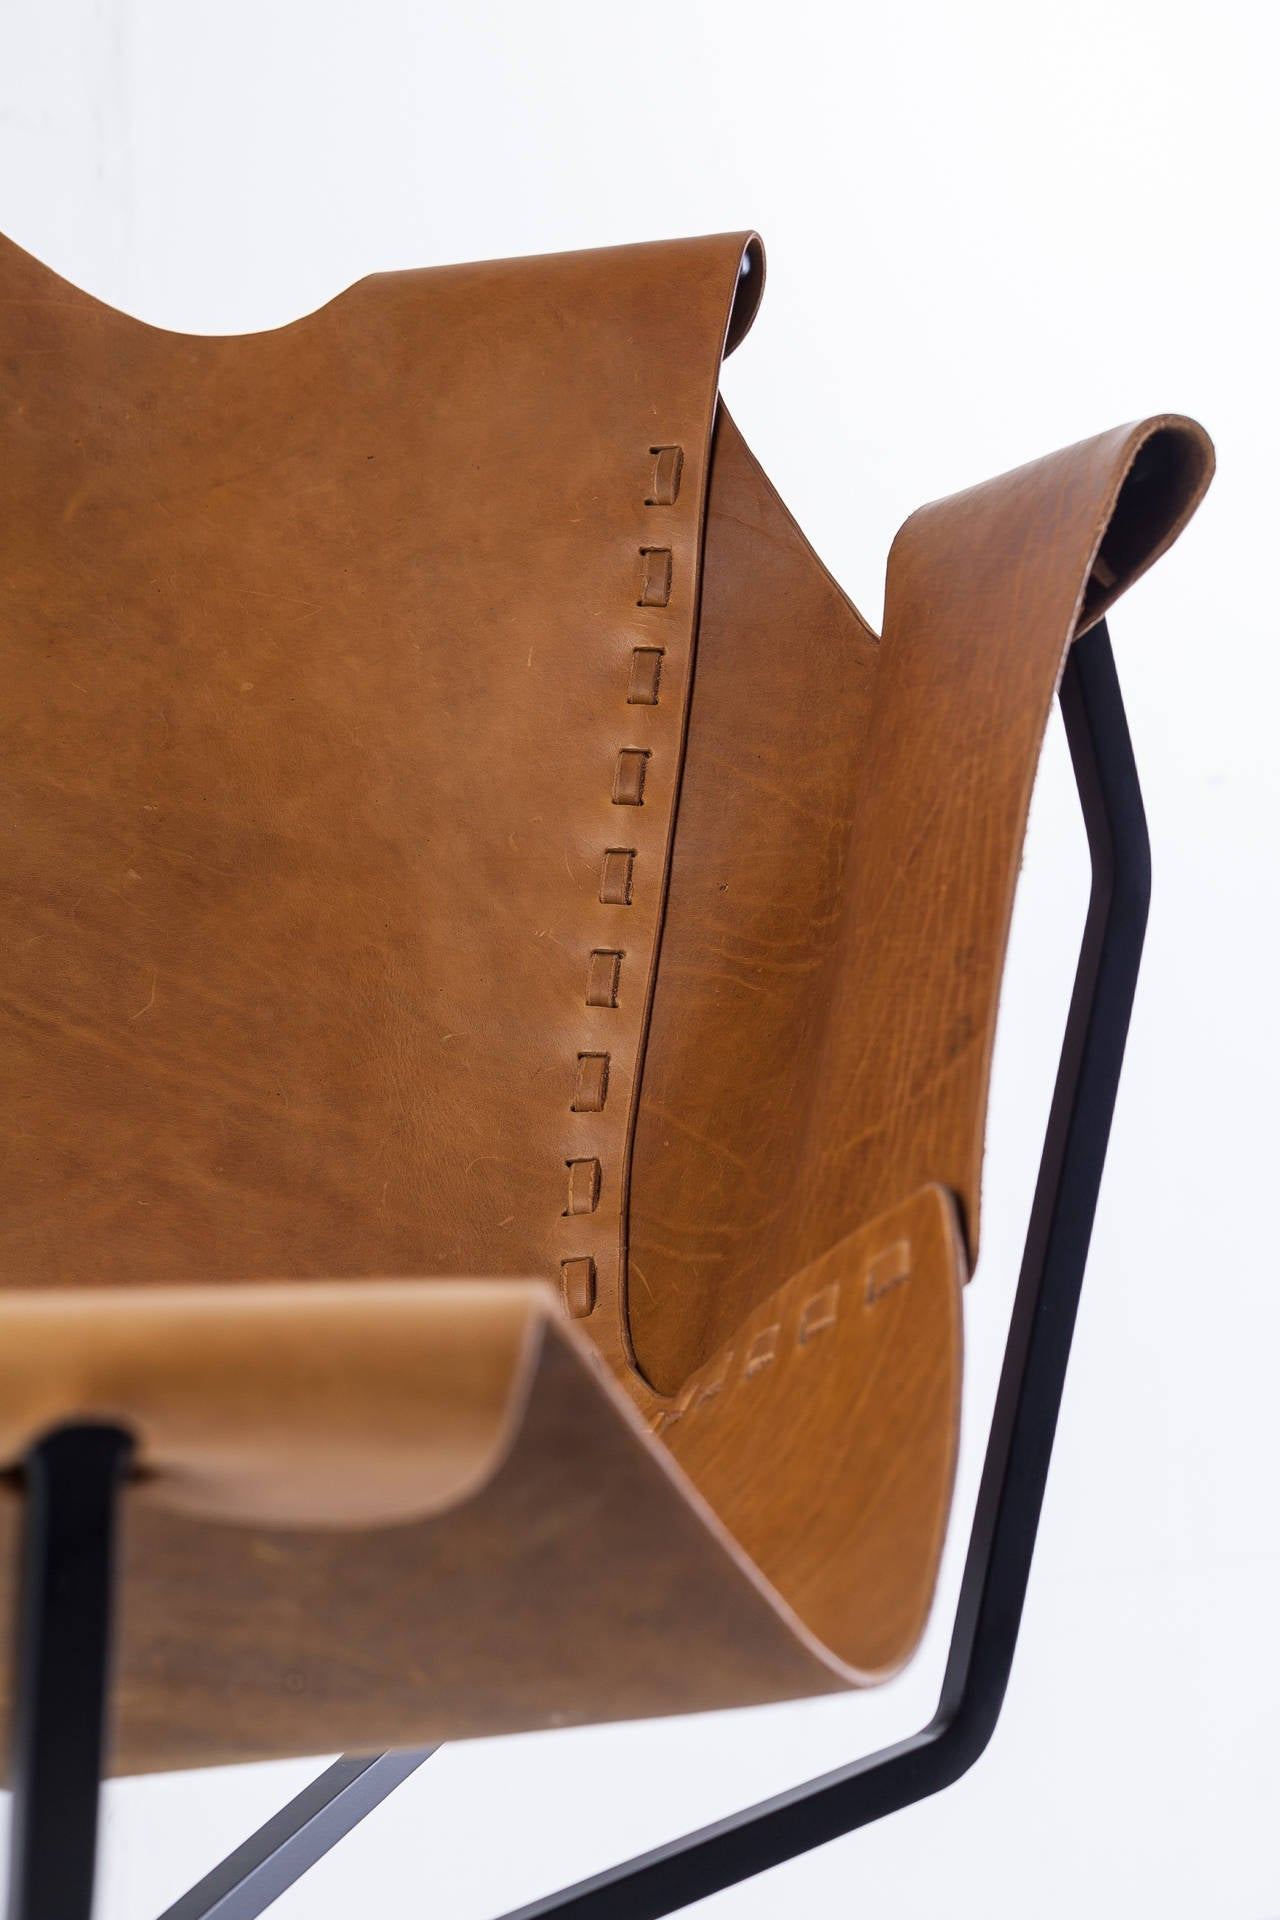 Special Edition Dan Wenger Sling Chair, USA, 1970s 7